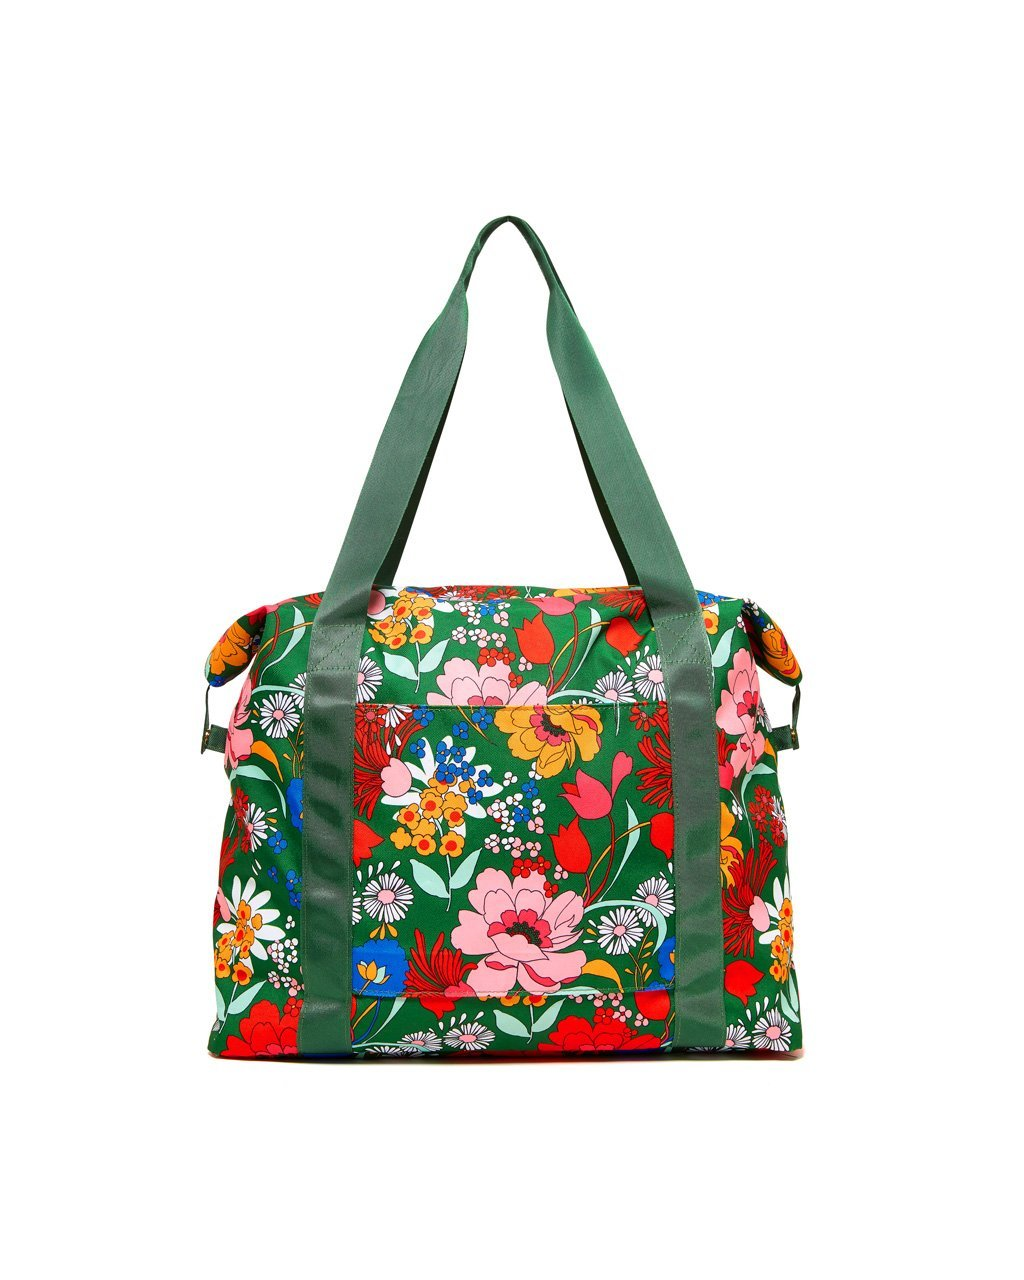 Emerald green nylon floral printed weekender bag